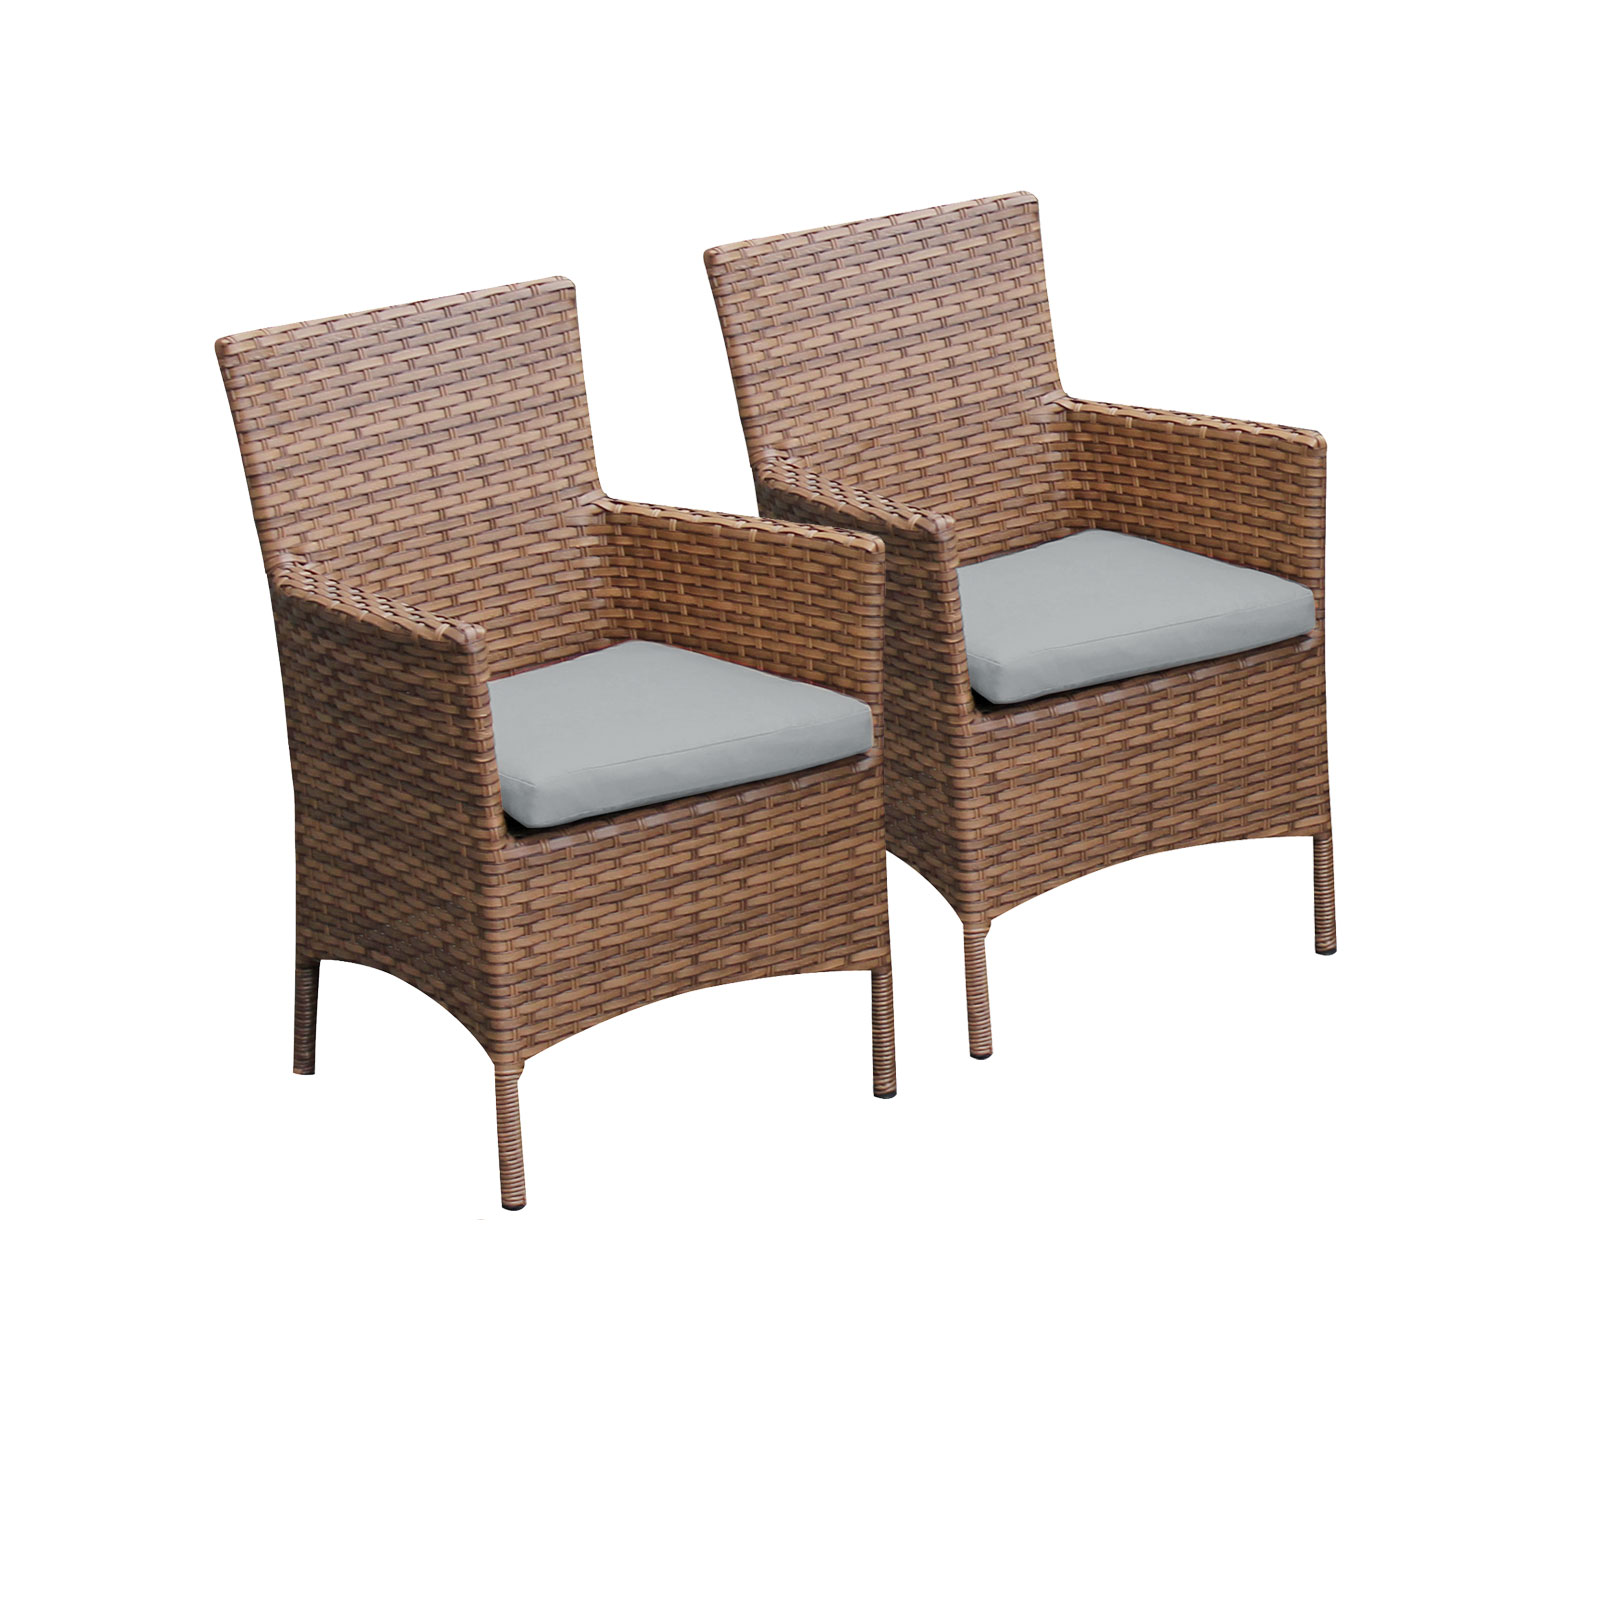 2 Tuscan Dining Chairs With Arms